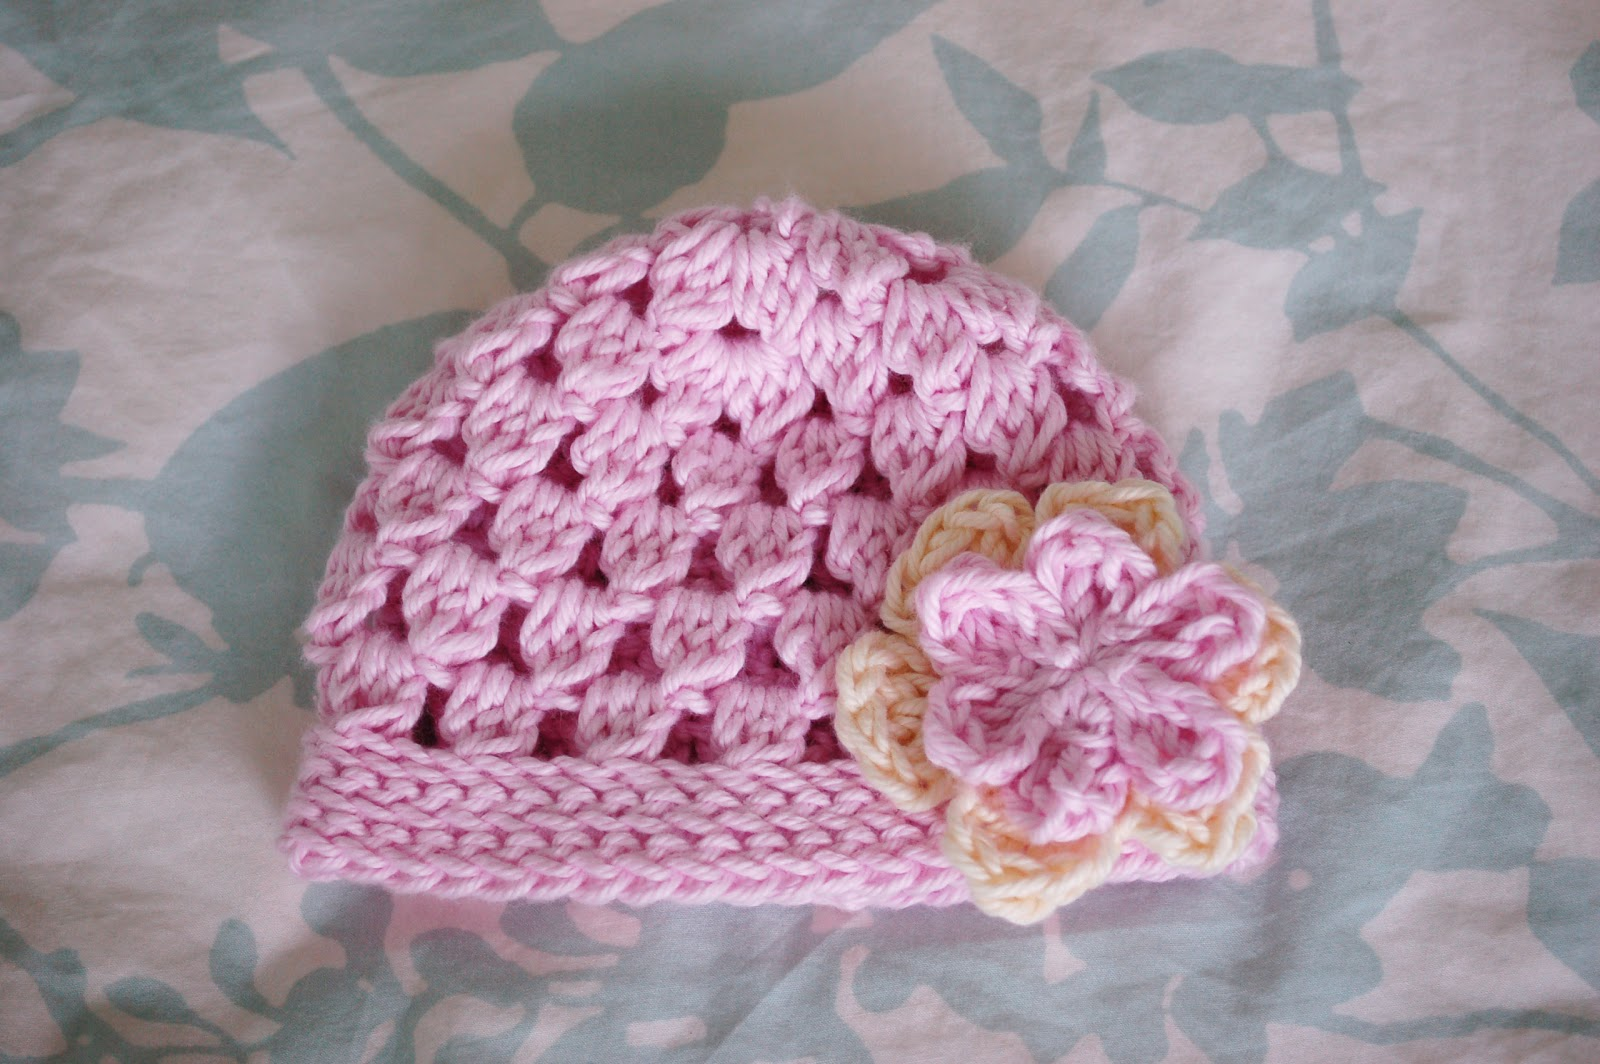 Alli crafts free pattern cluster hat newborn free pattern cluster hat newborn bankloansurffo Image collections